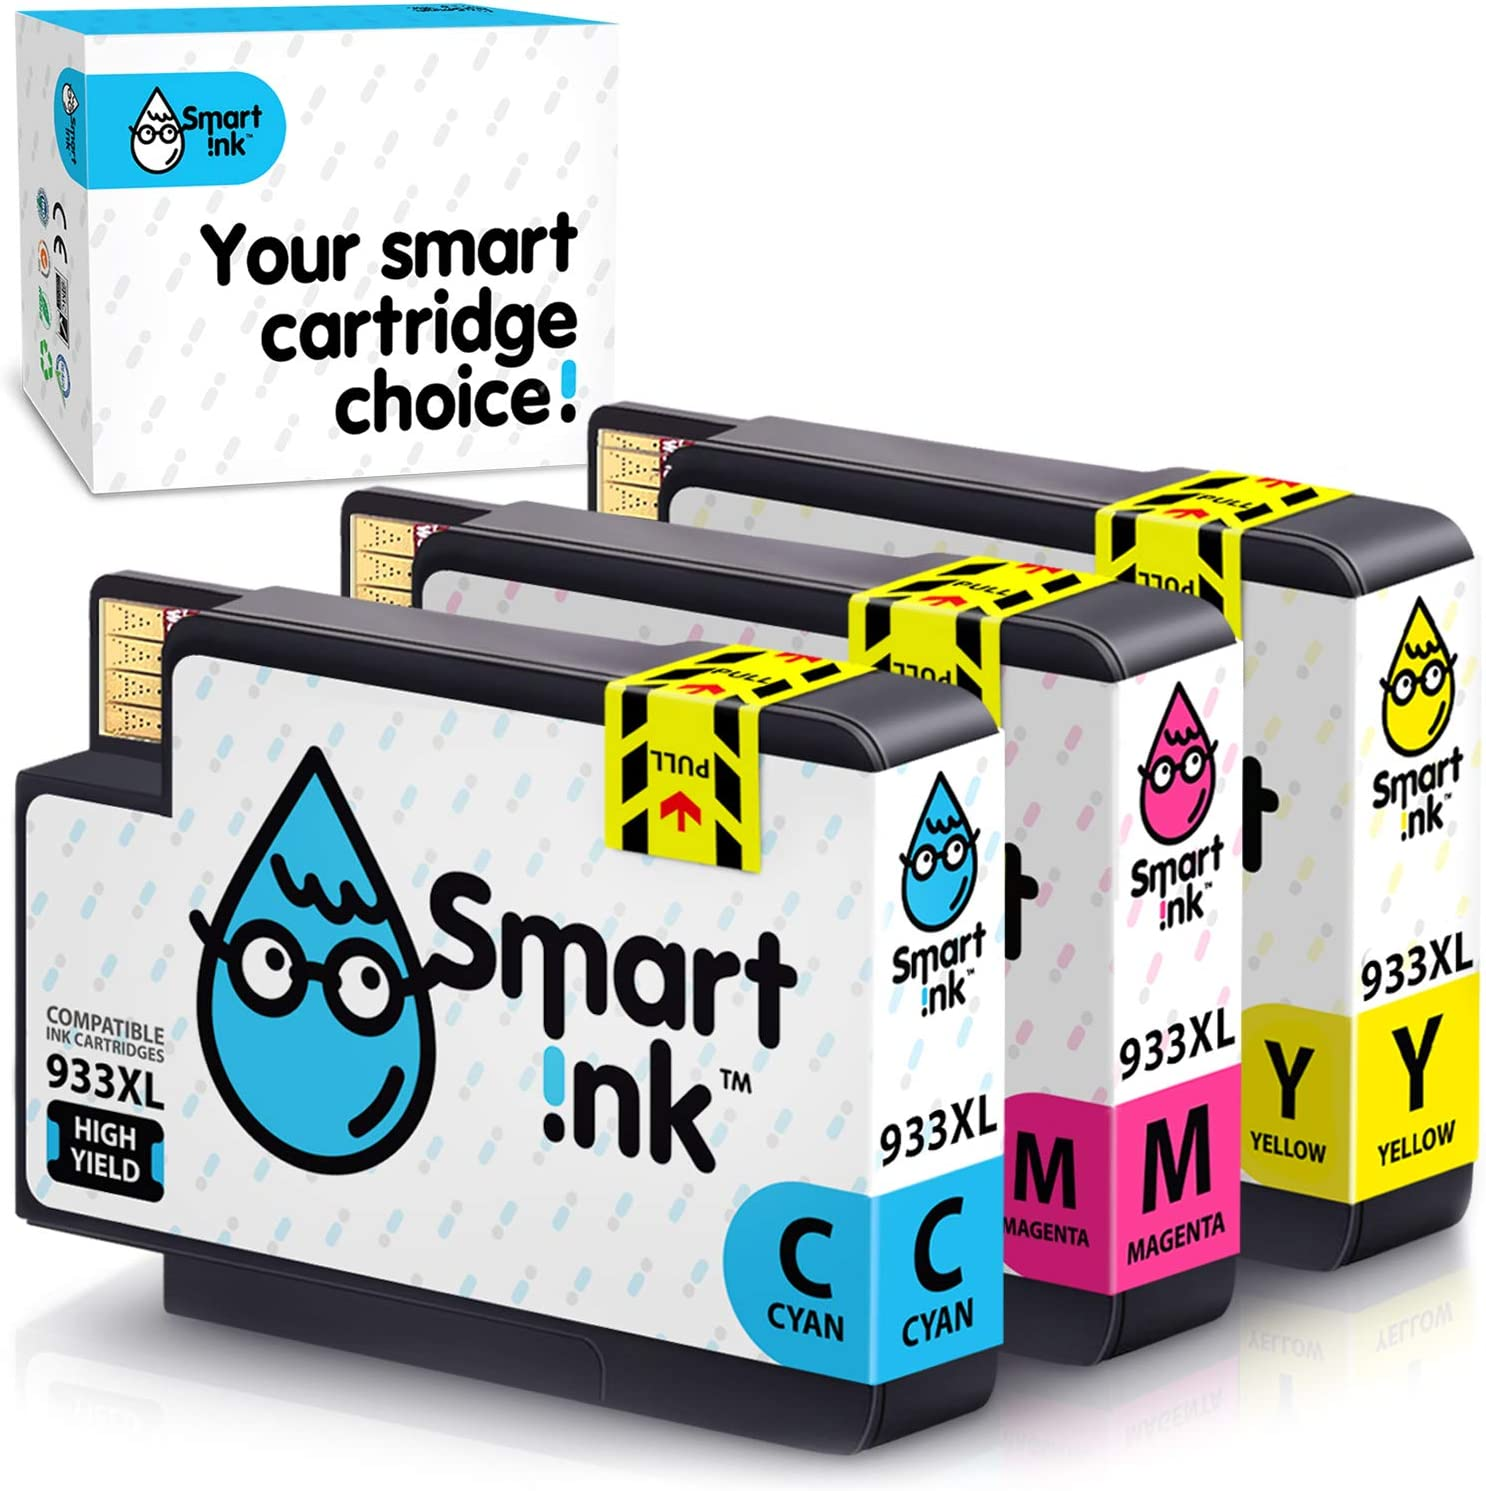 Smart Ink Compatible Ink Cartridge Replacement for HP 932XL 933XL 932 XL 933 High Yield Set (Cyan,Magenta,Yellow, 3 Combo Pack) to use with Officejet 6100 6600 6700 7110 7510 7610 7612 7620